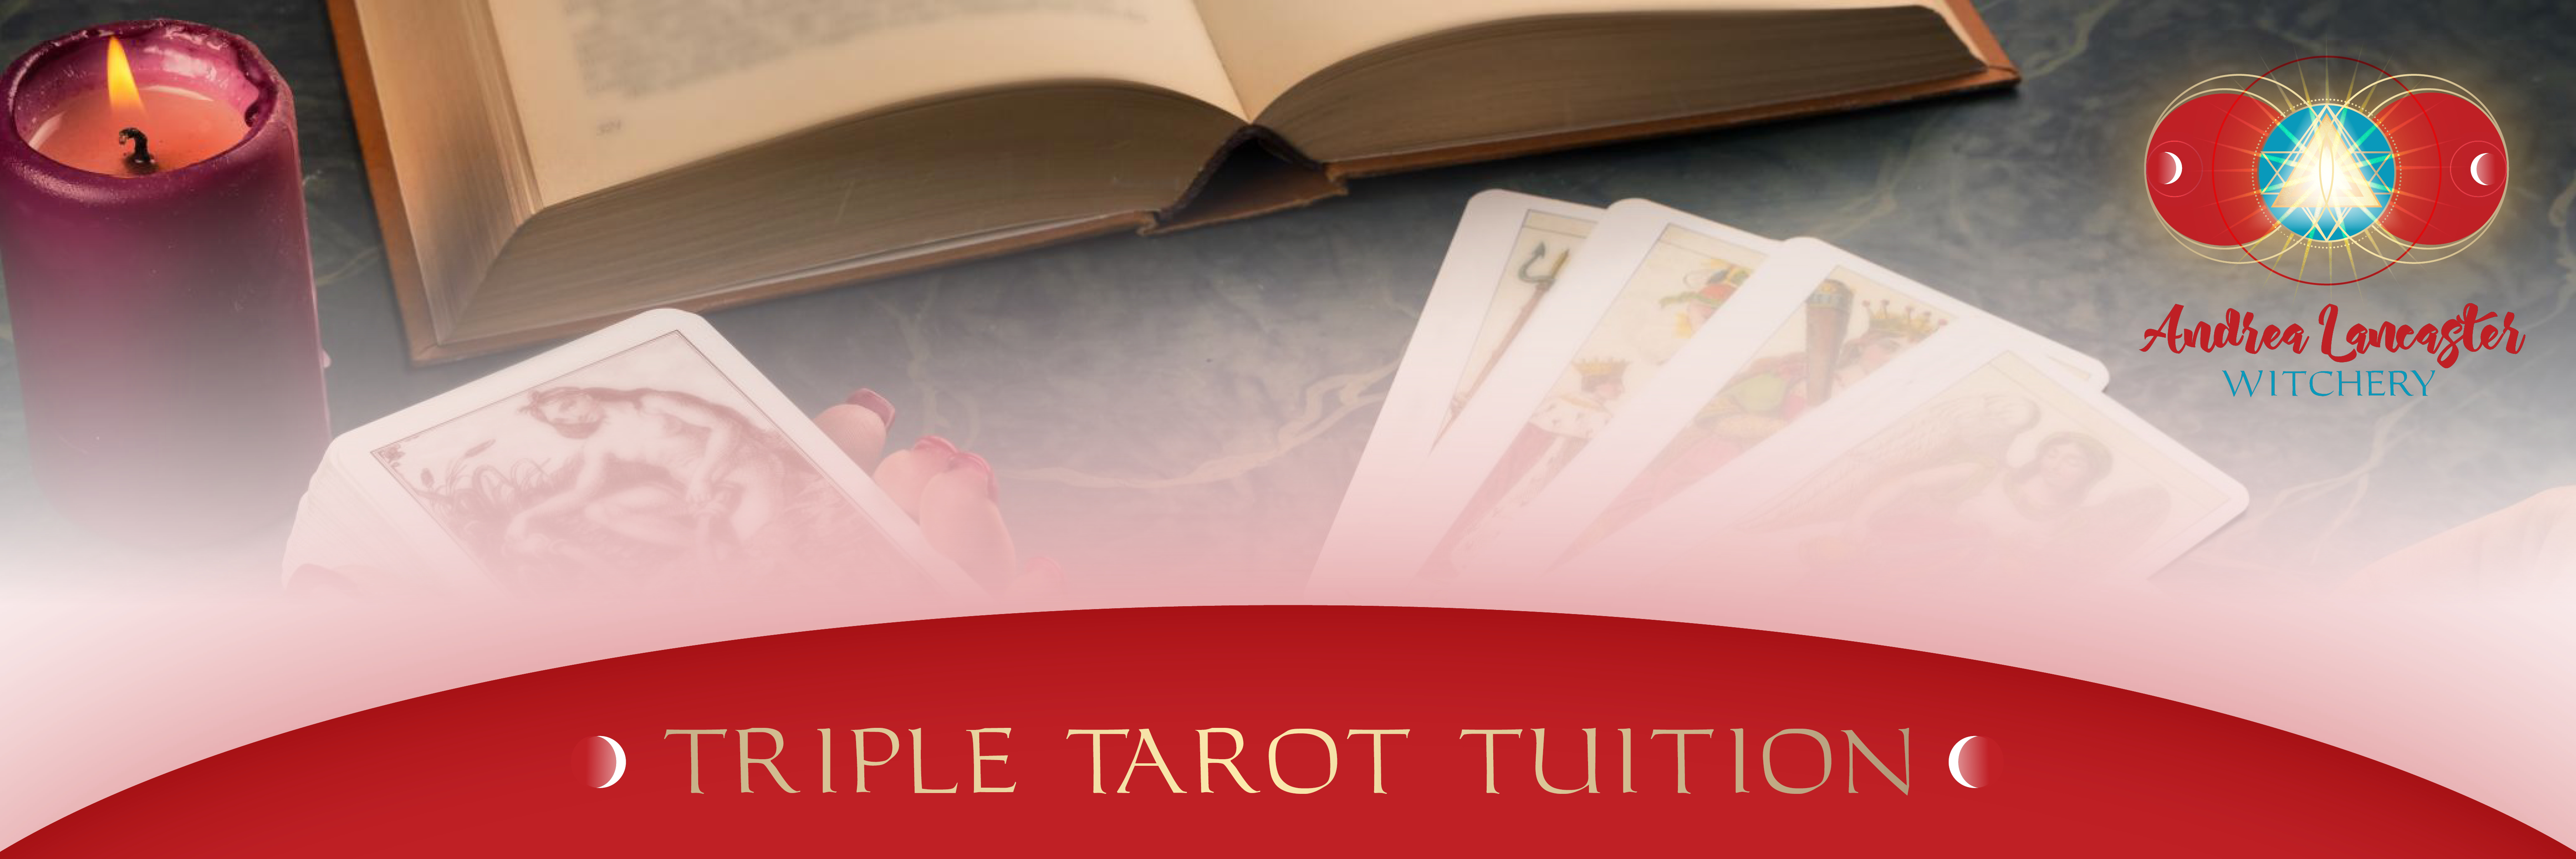 simplero triple tarot tuition banner